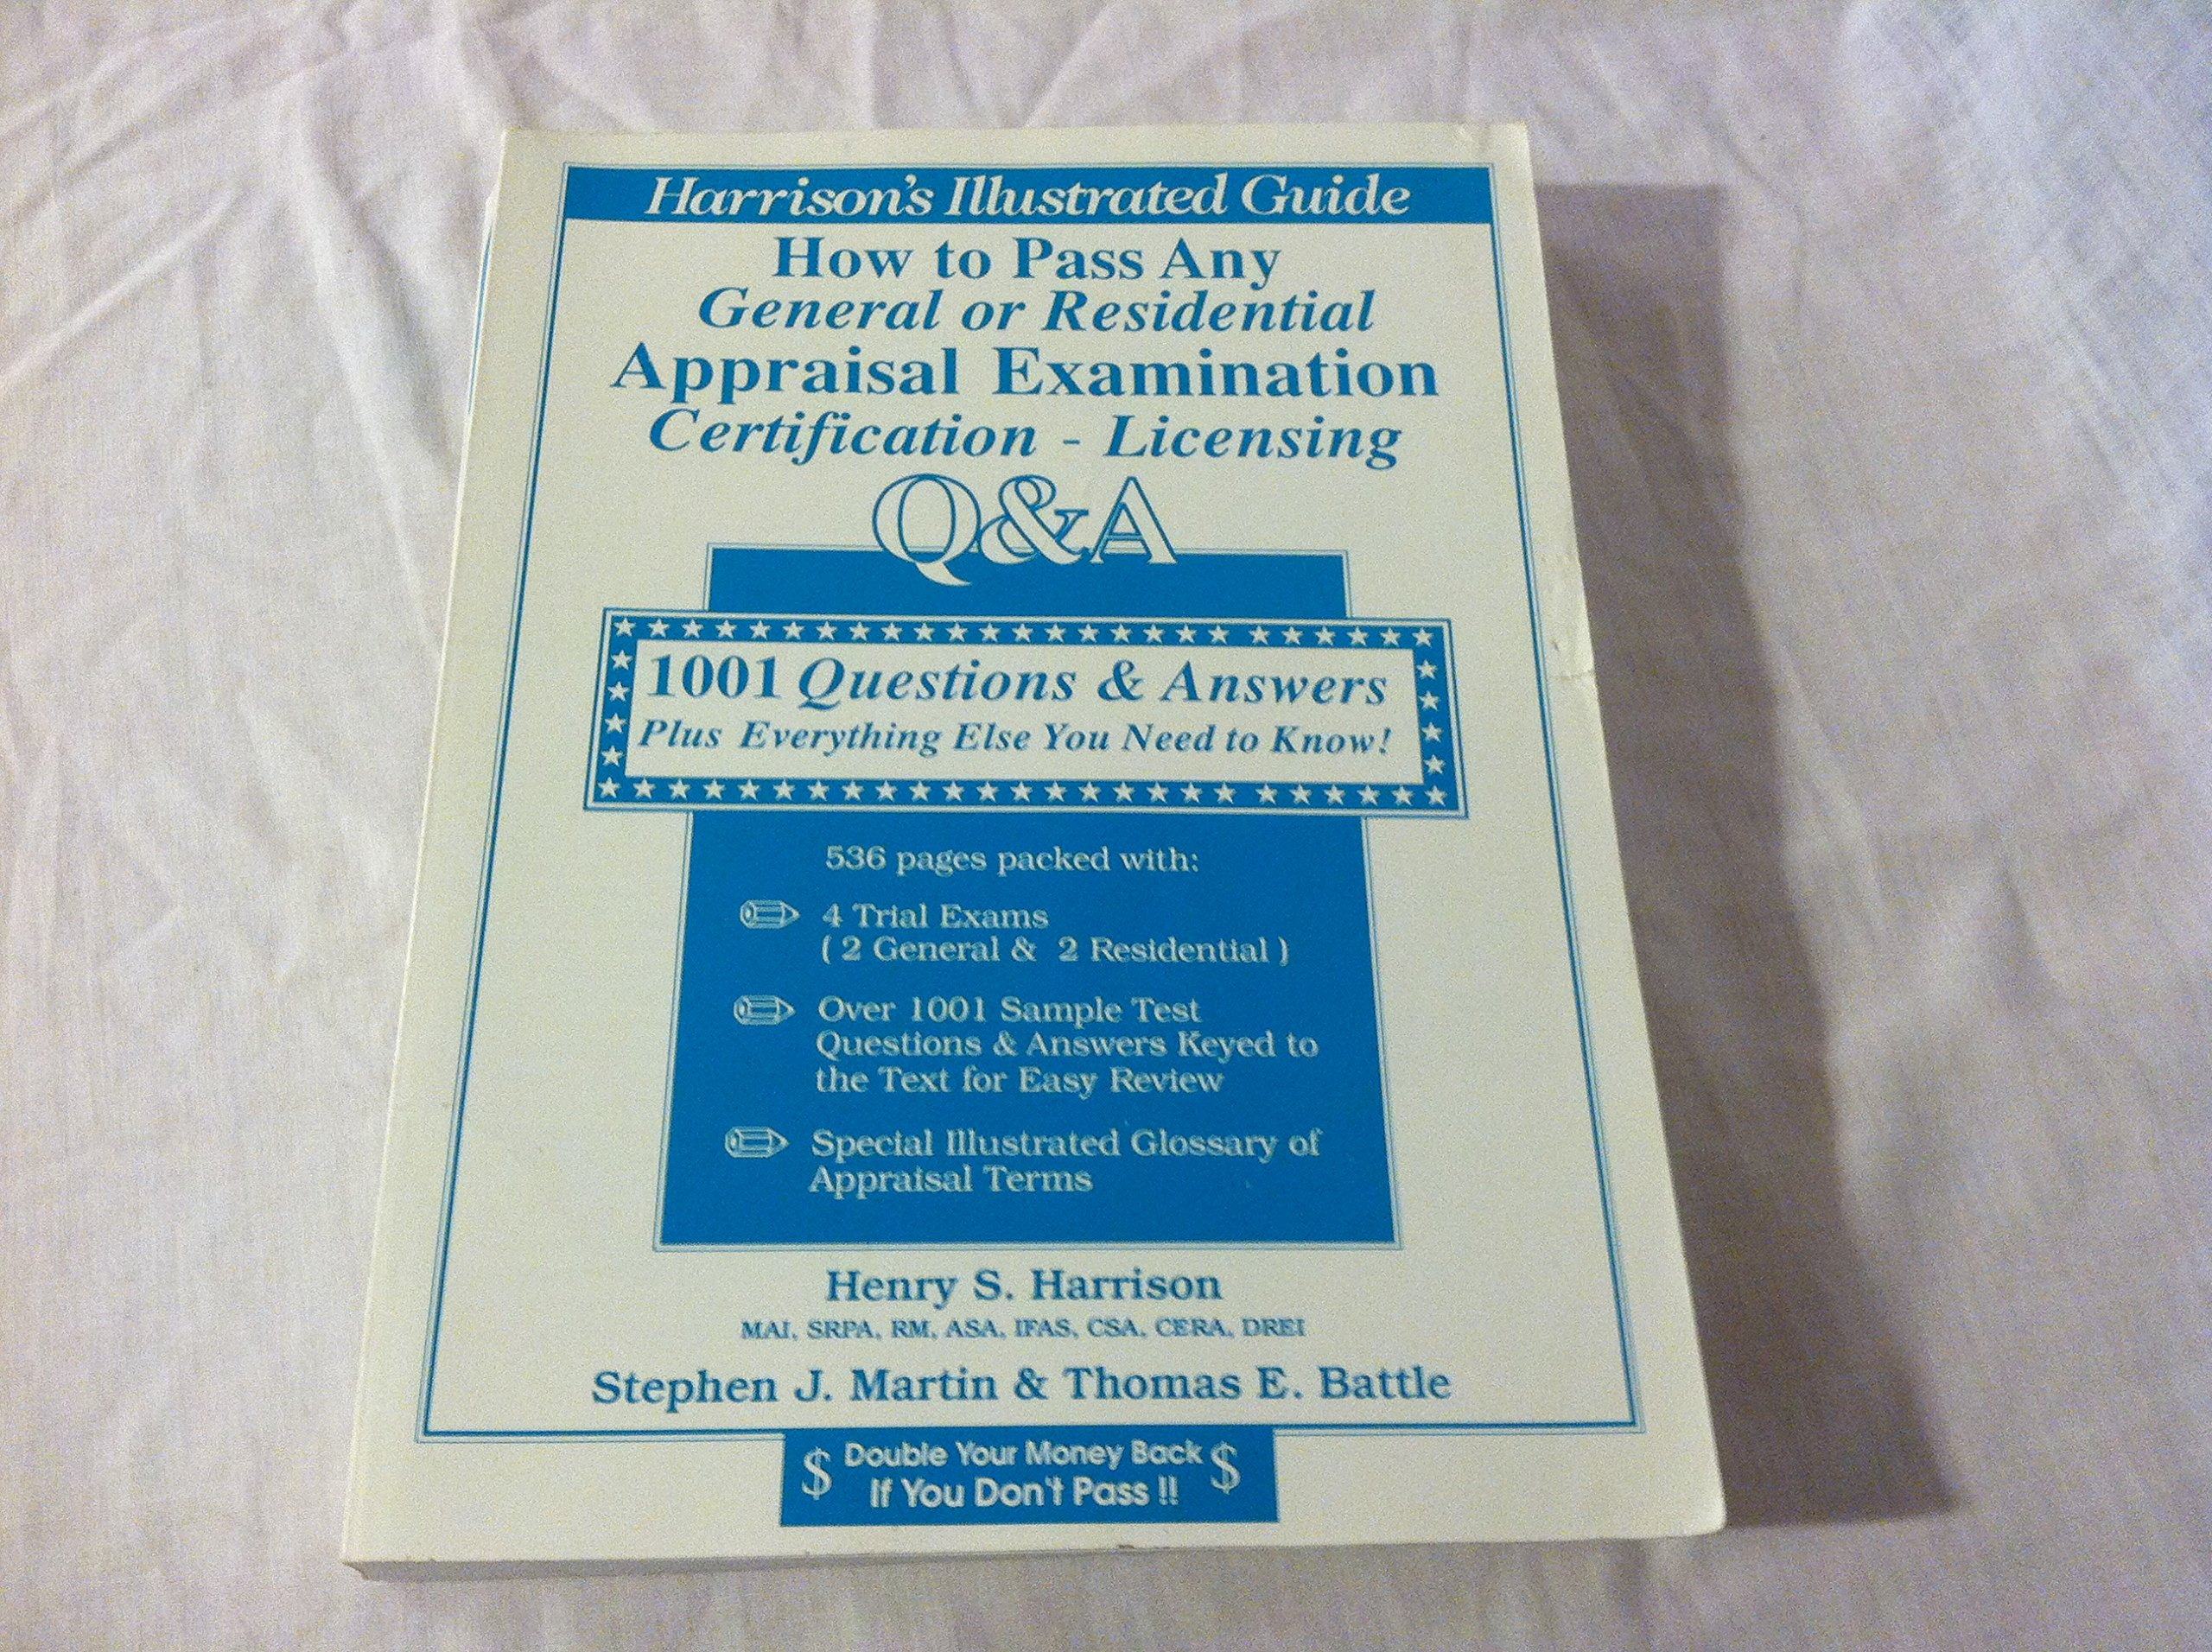 How To Pass Any General Or Residential Appraisal Examination